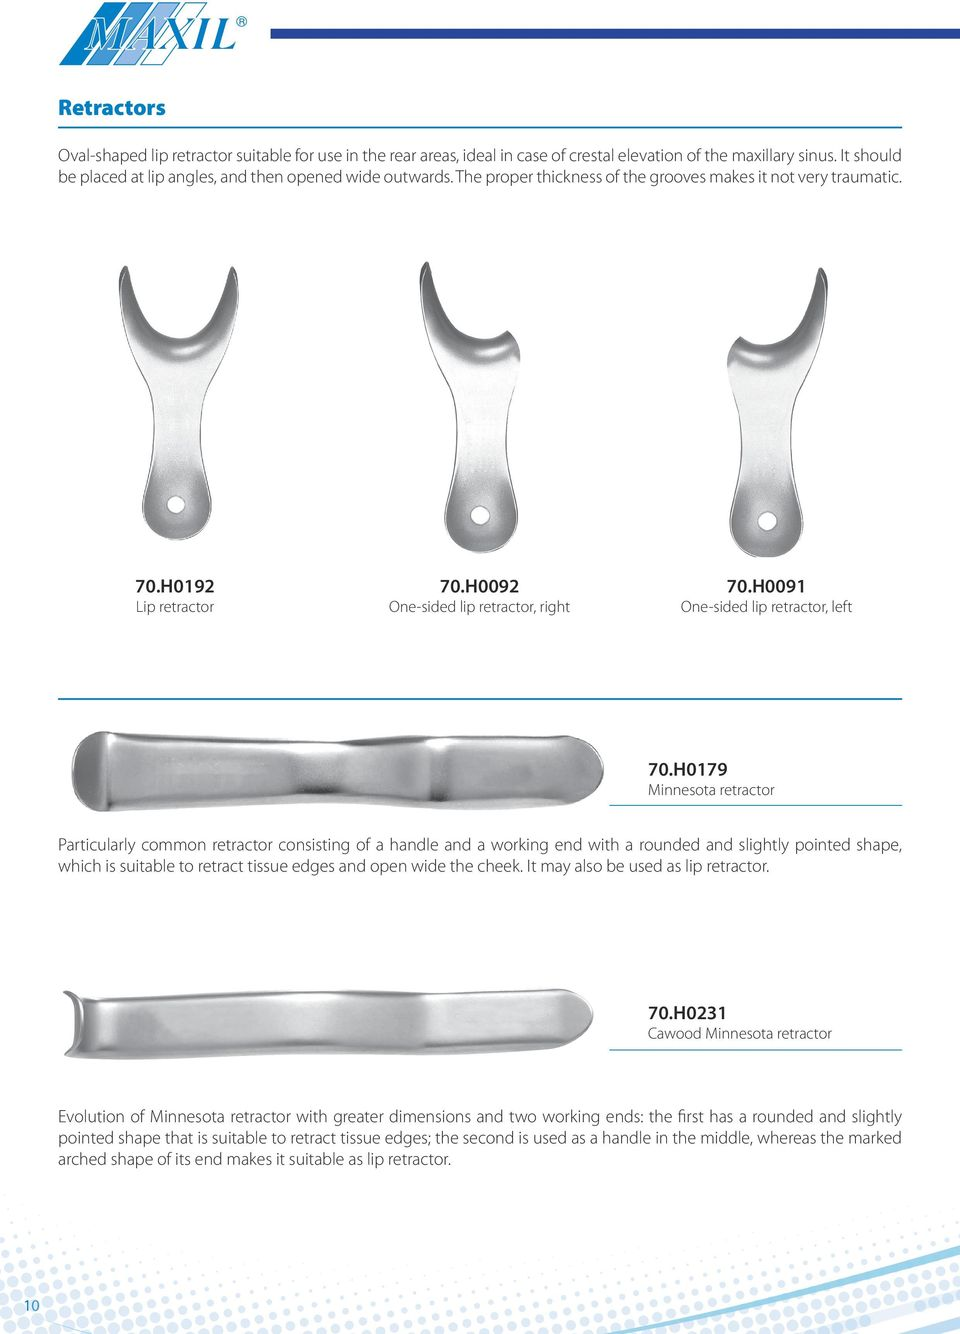 H0179 Minnesota retractor Particularly common retractor consisting of a handle and a working end with a rounded and slightly pointed shape, which is suitable to retract tissue edges and open wide the